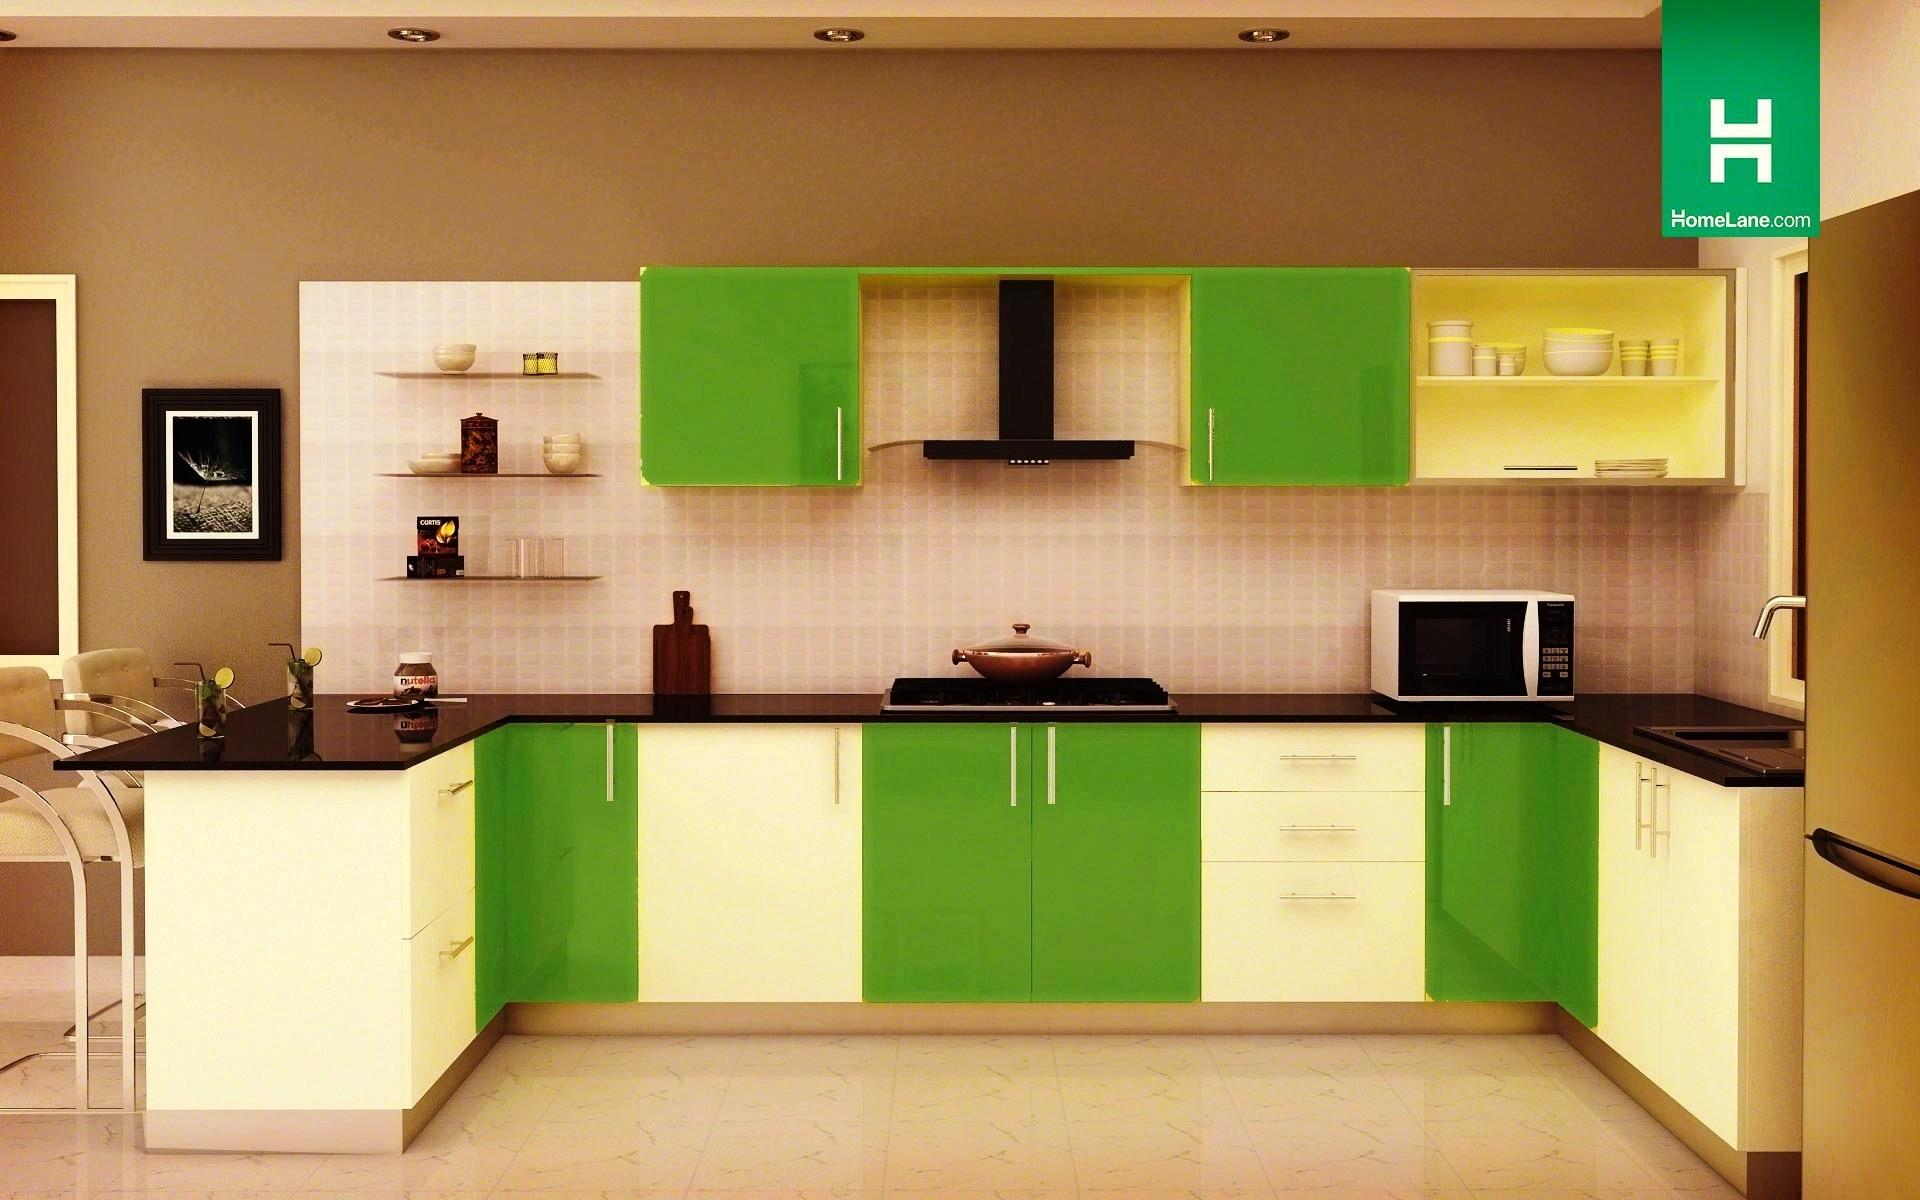 32 Uniquely Modular Italian Kitchen Trendy Designs That You Will Want To Have Fantastic Pictures Decoratorist